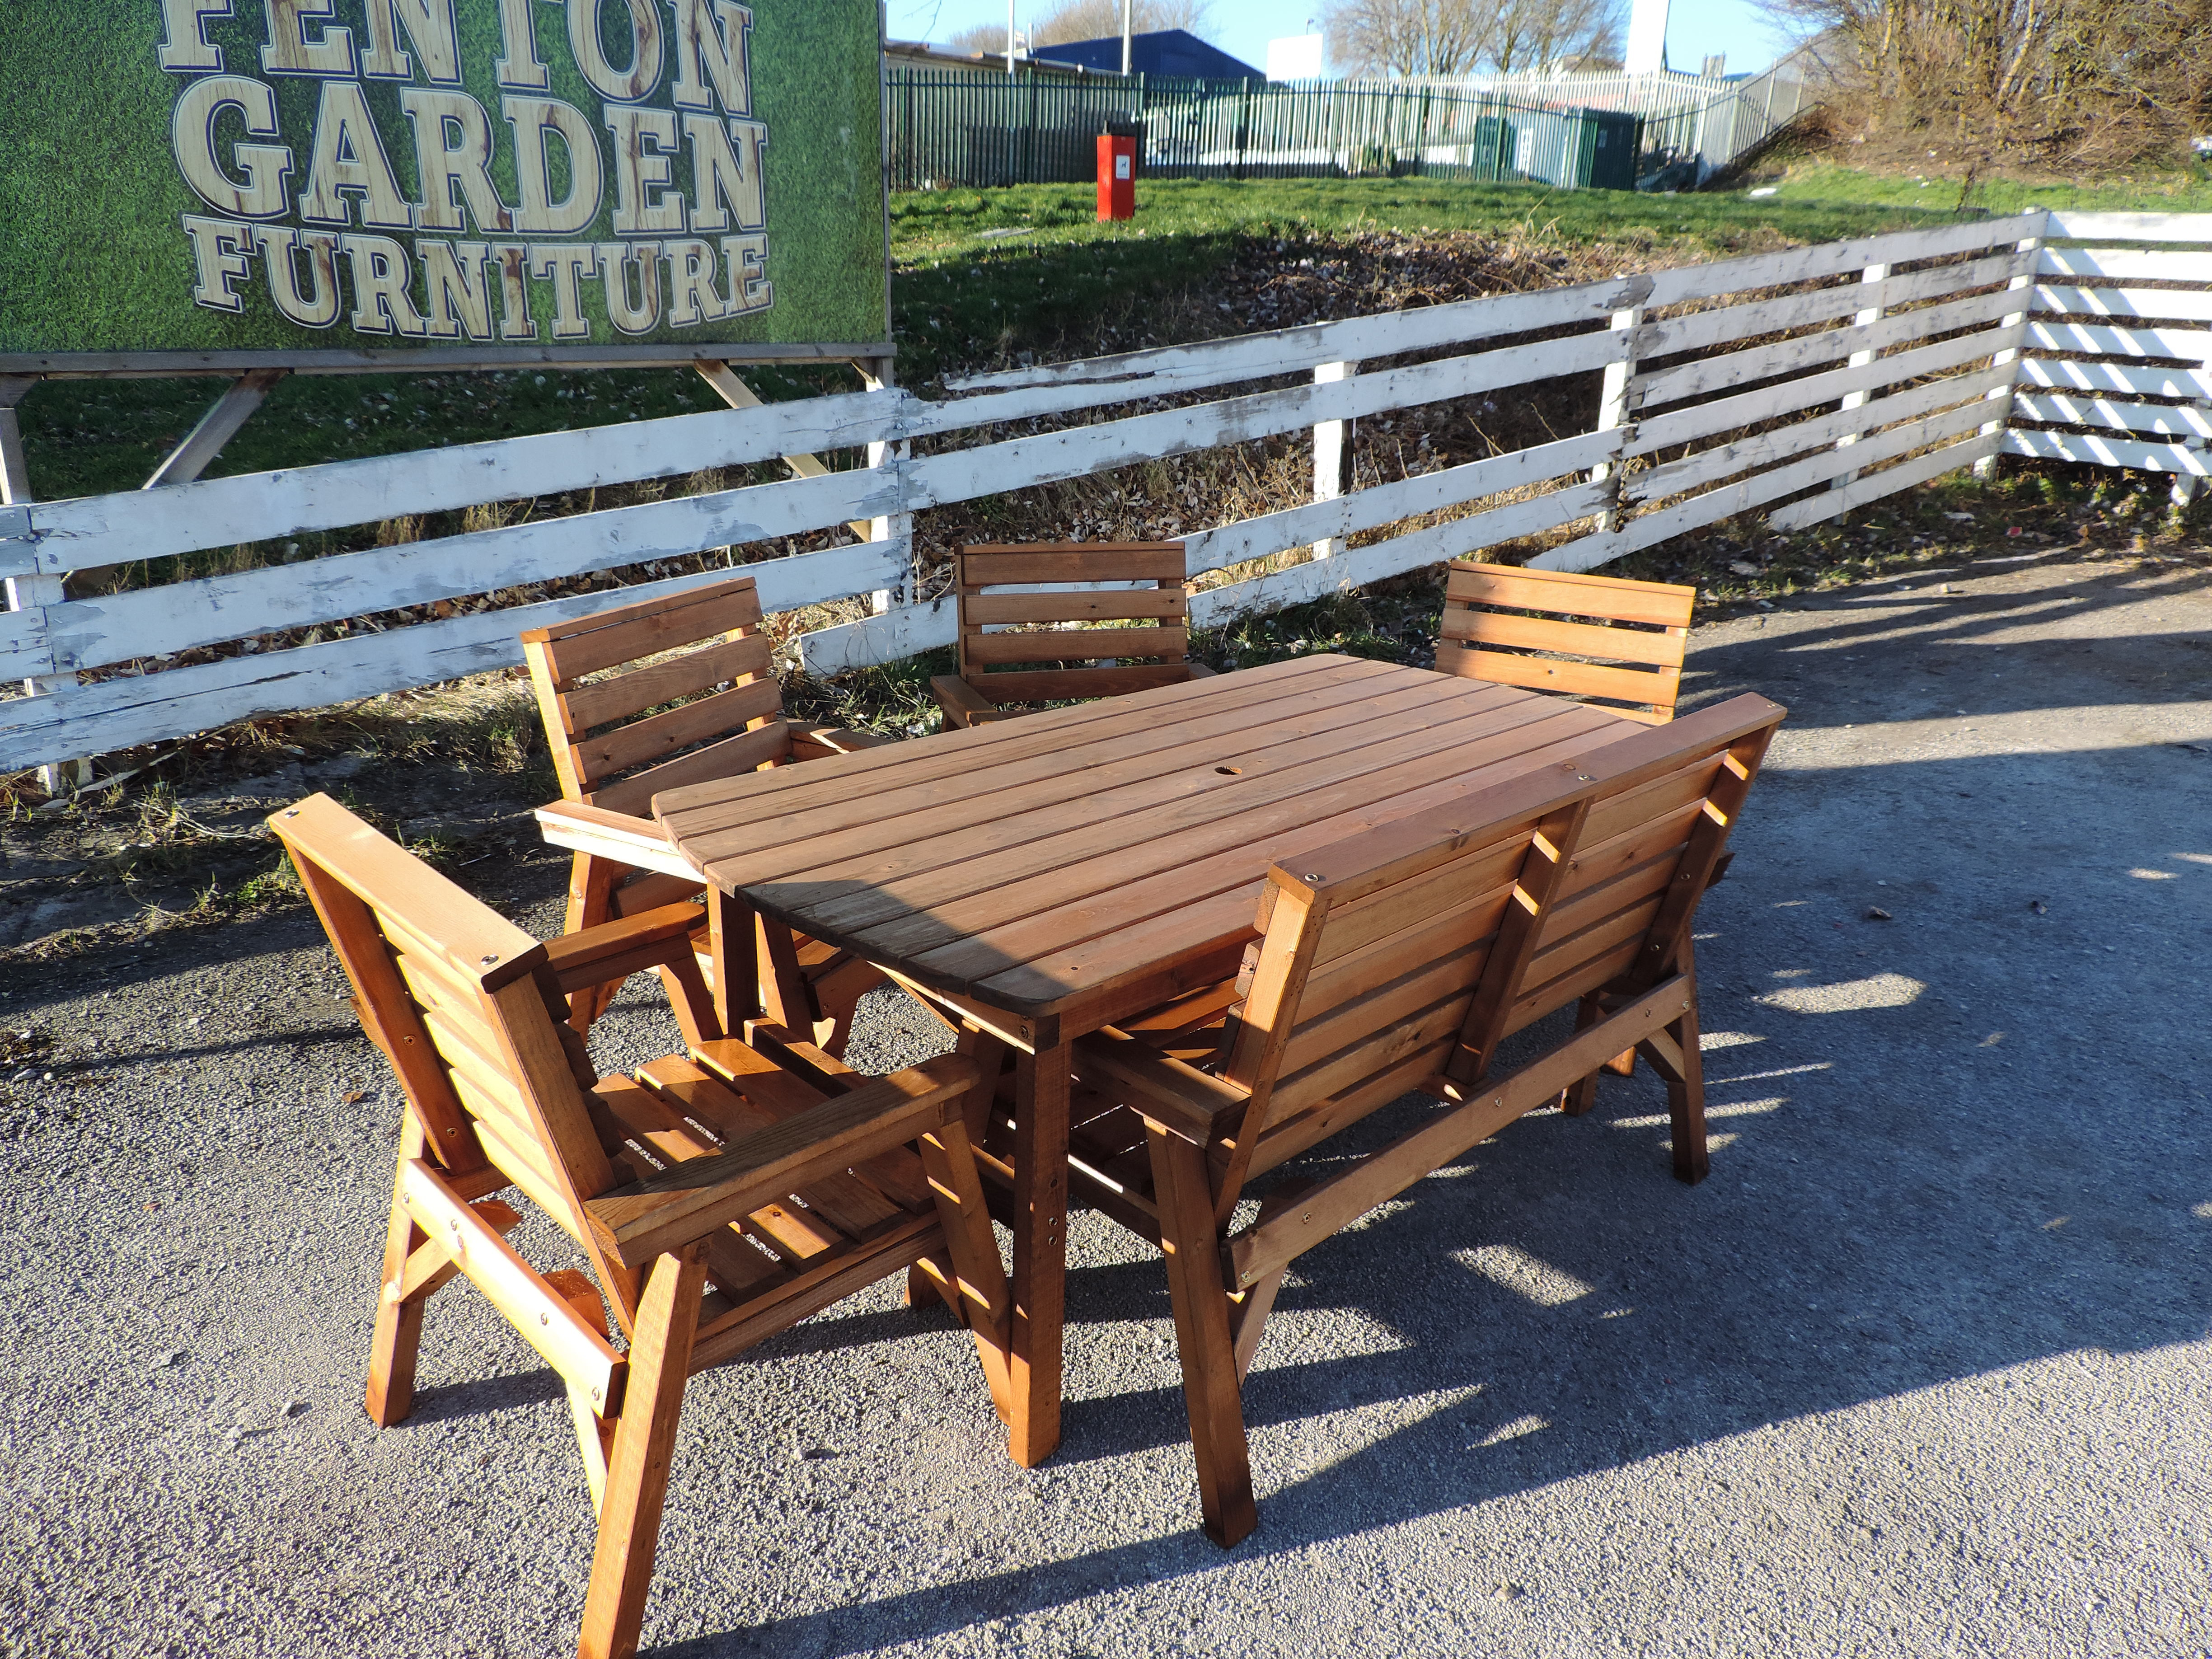 High Back Wooden Garden Furniture 6\' Table 1 Bench & 4 Chairs